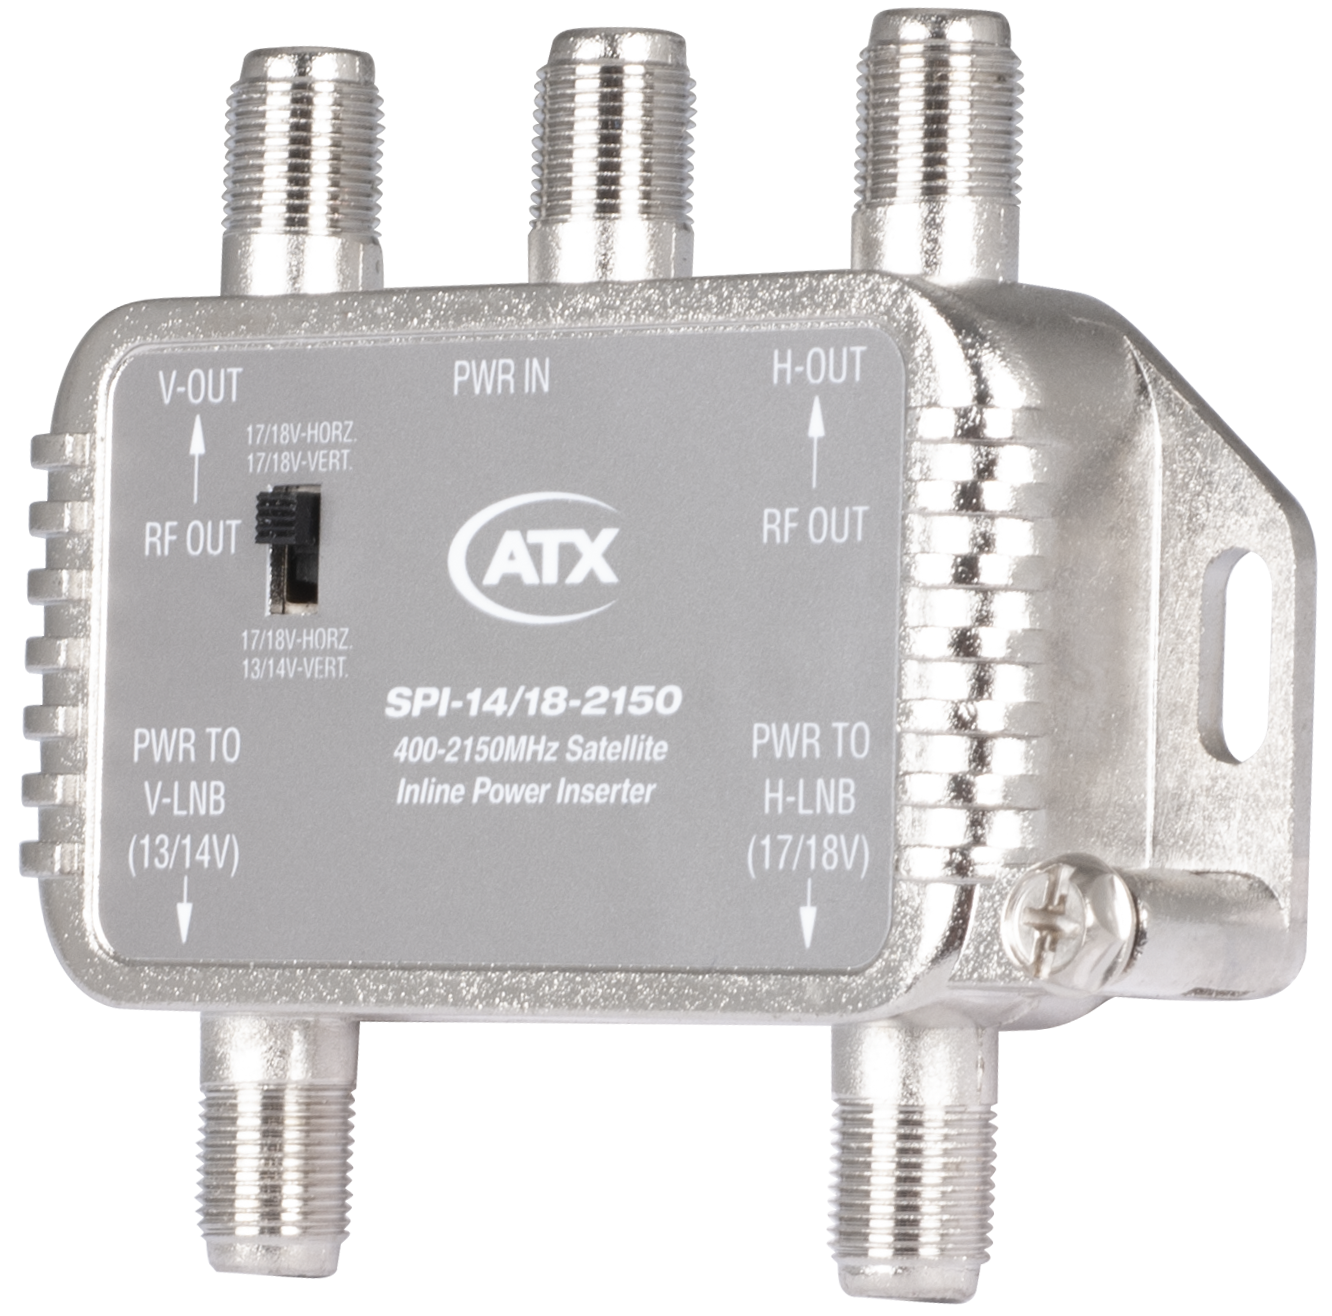 SPI-14/18-2150: 400 MHz to 2150 MHz, Satellite Inline Power Inserter